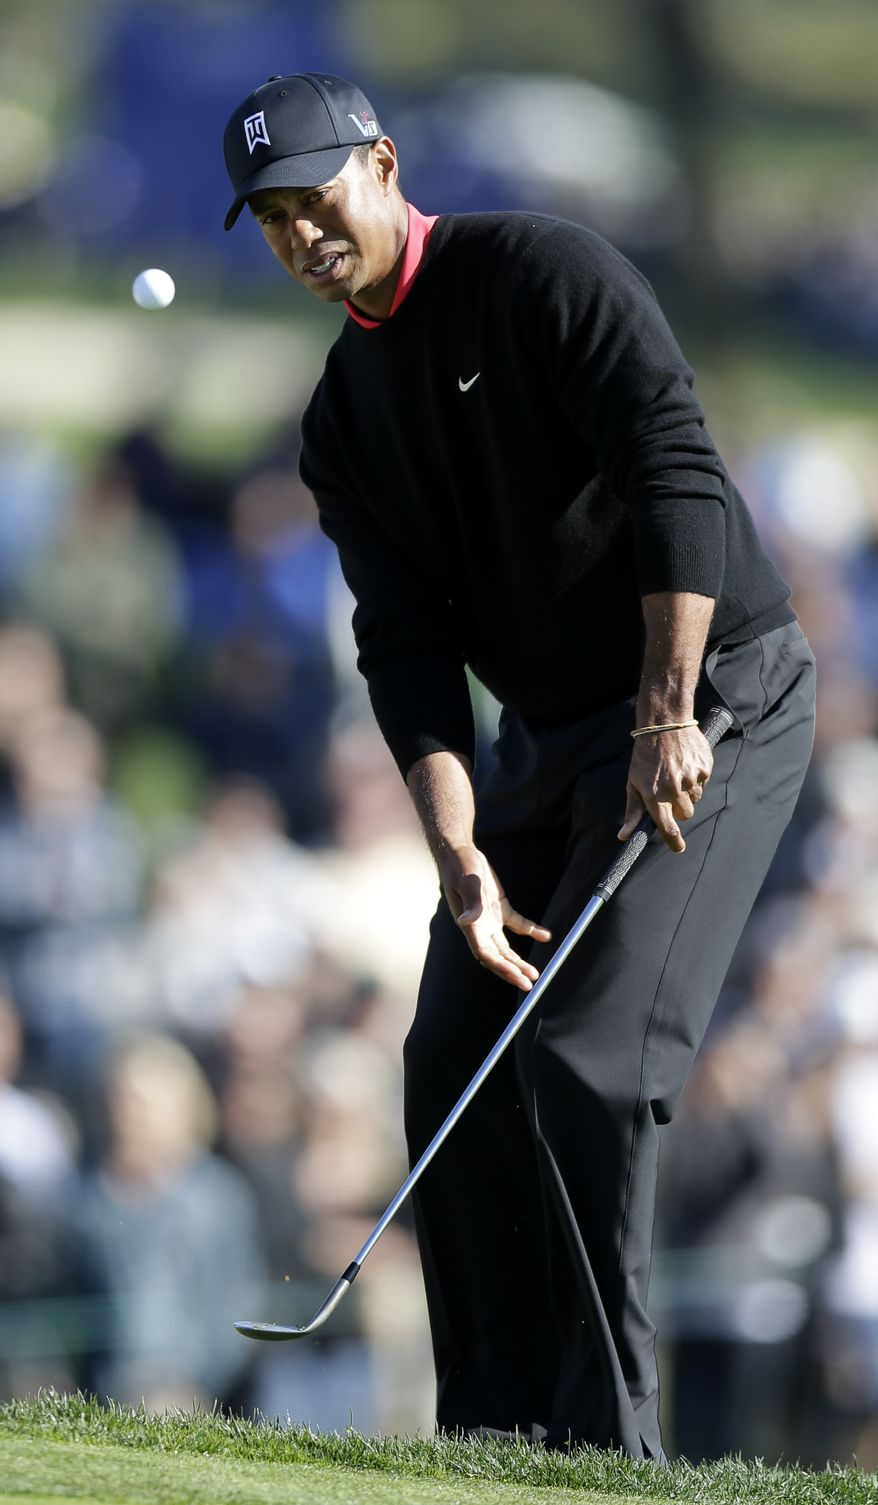 Tiger Woods chips in from the edge of a bunker on the 12th hole during the fourth round of the Farmers Insurance Open golf tournament at the Torrey Pines Golf Course, Monday, Jan. 28, 2013, in San Diego. (AP Photo/Gregory Bull)